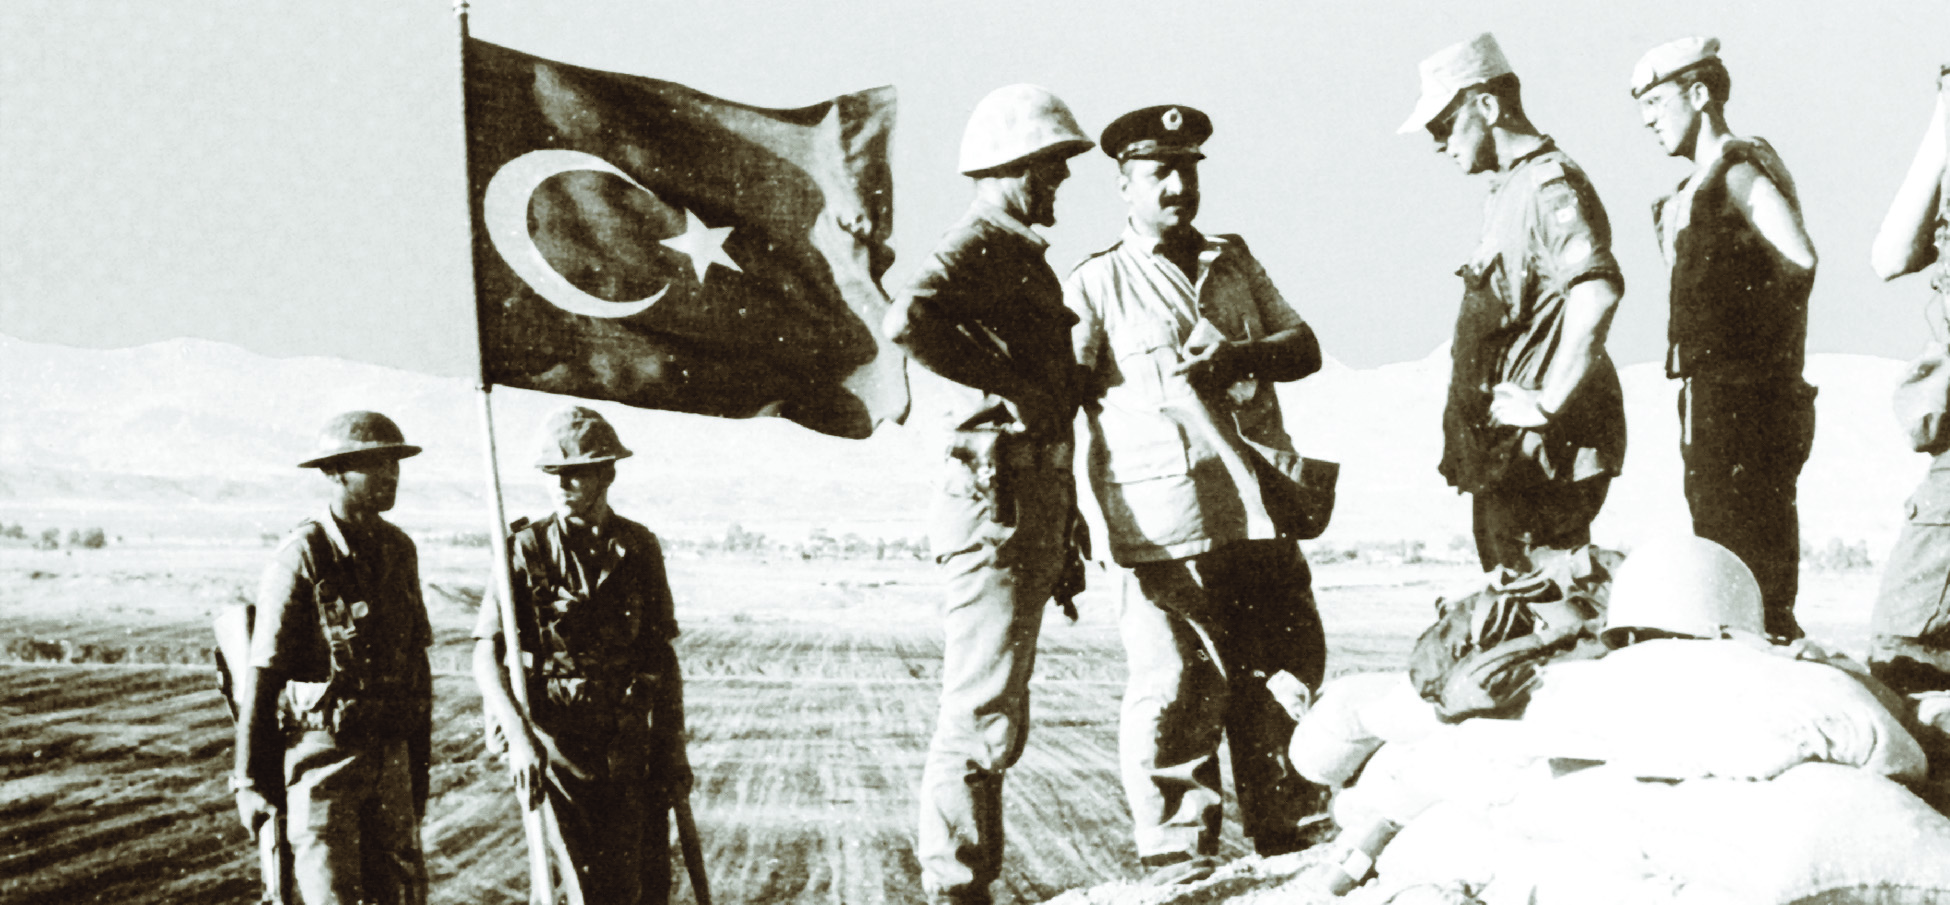 On July 15, 1974, the Greek Cypriot National Guard staged a coup and overthrew president Archbishop Makarios III. Five days later, on July 20, the Turkish army invaded Cyprus in response to the overthrow, officially claiming they wished to protect the Turkish minority on the island. Three days after the Turkish invasion, a ceasefire was reached between the belligerents, but it dissolved following repeated attacks. A permanent ceasefire and a division of the island was finally reached on August 16, 1974. The United Nations have supported the ceasefire contingent of peacekeepers ever since. (DND)